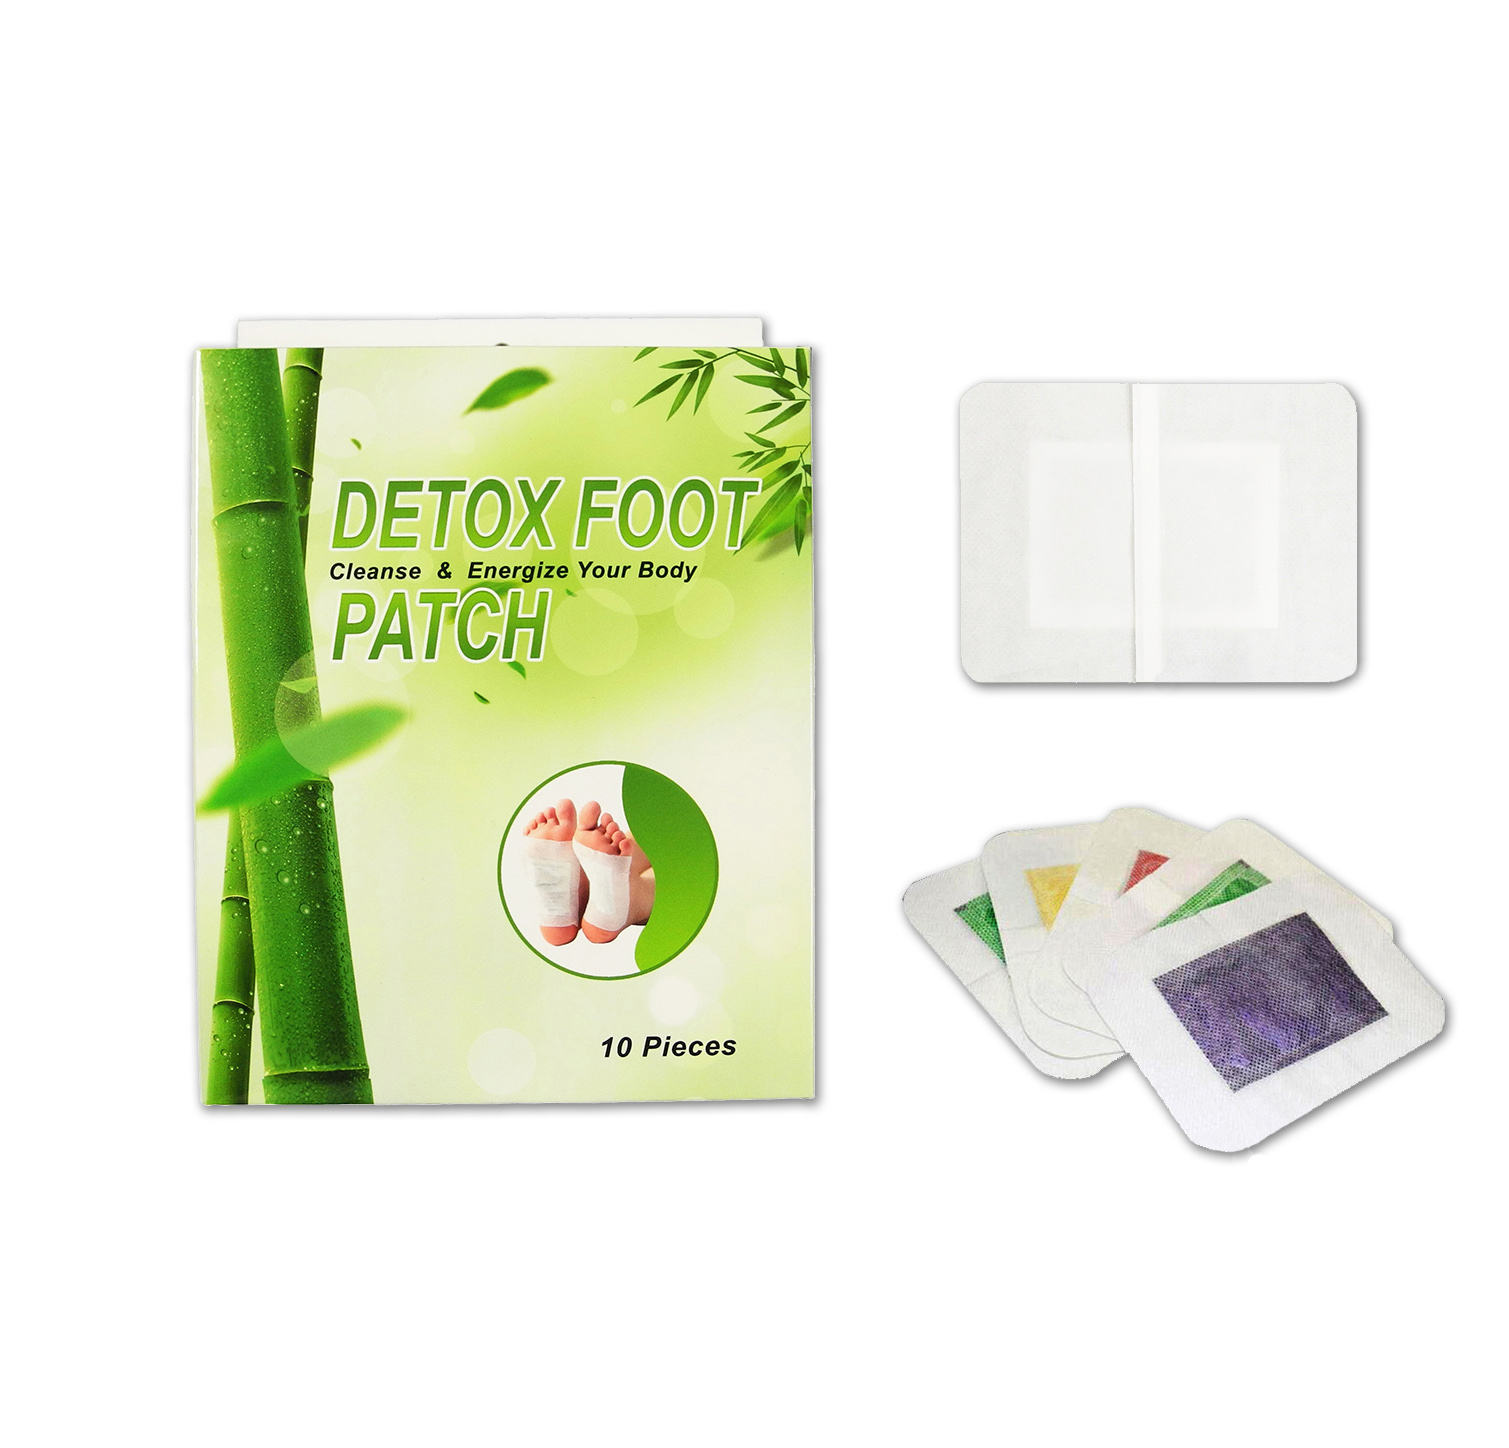 Chinês herbal detox para diminuir o açúcar no sangue diabetes hebei super remendo do pé do detox